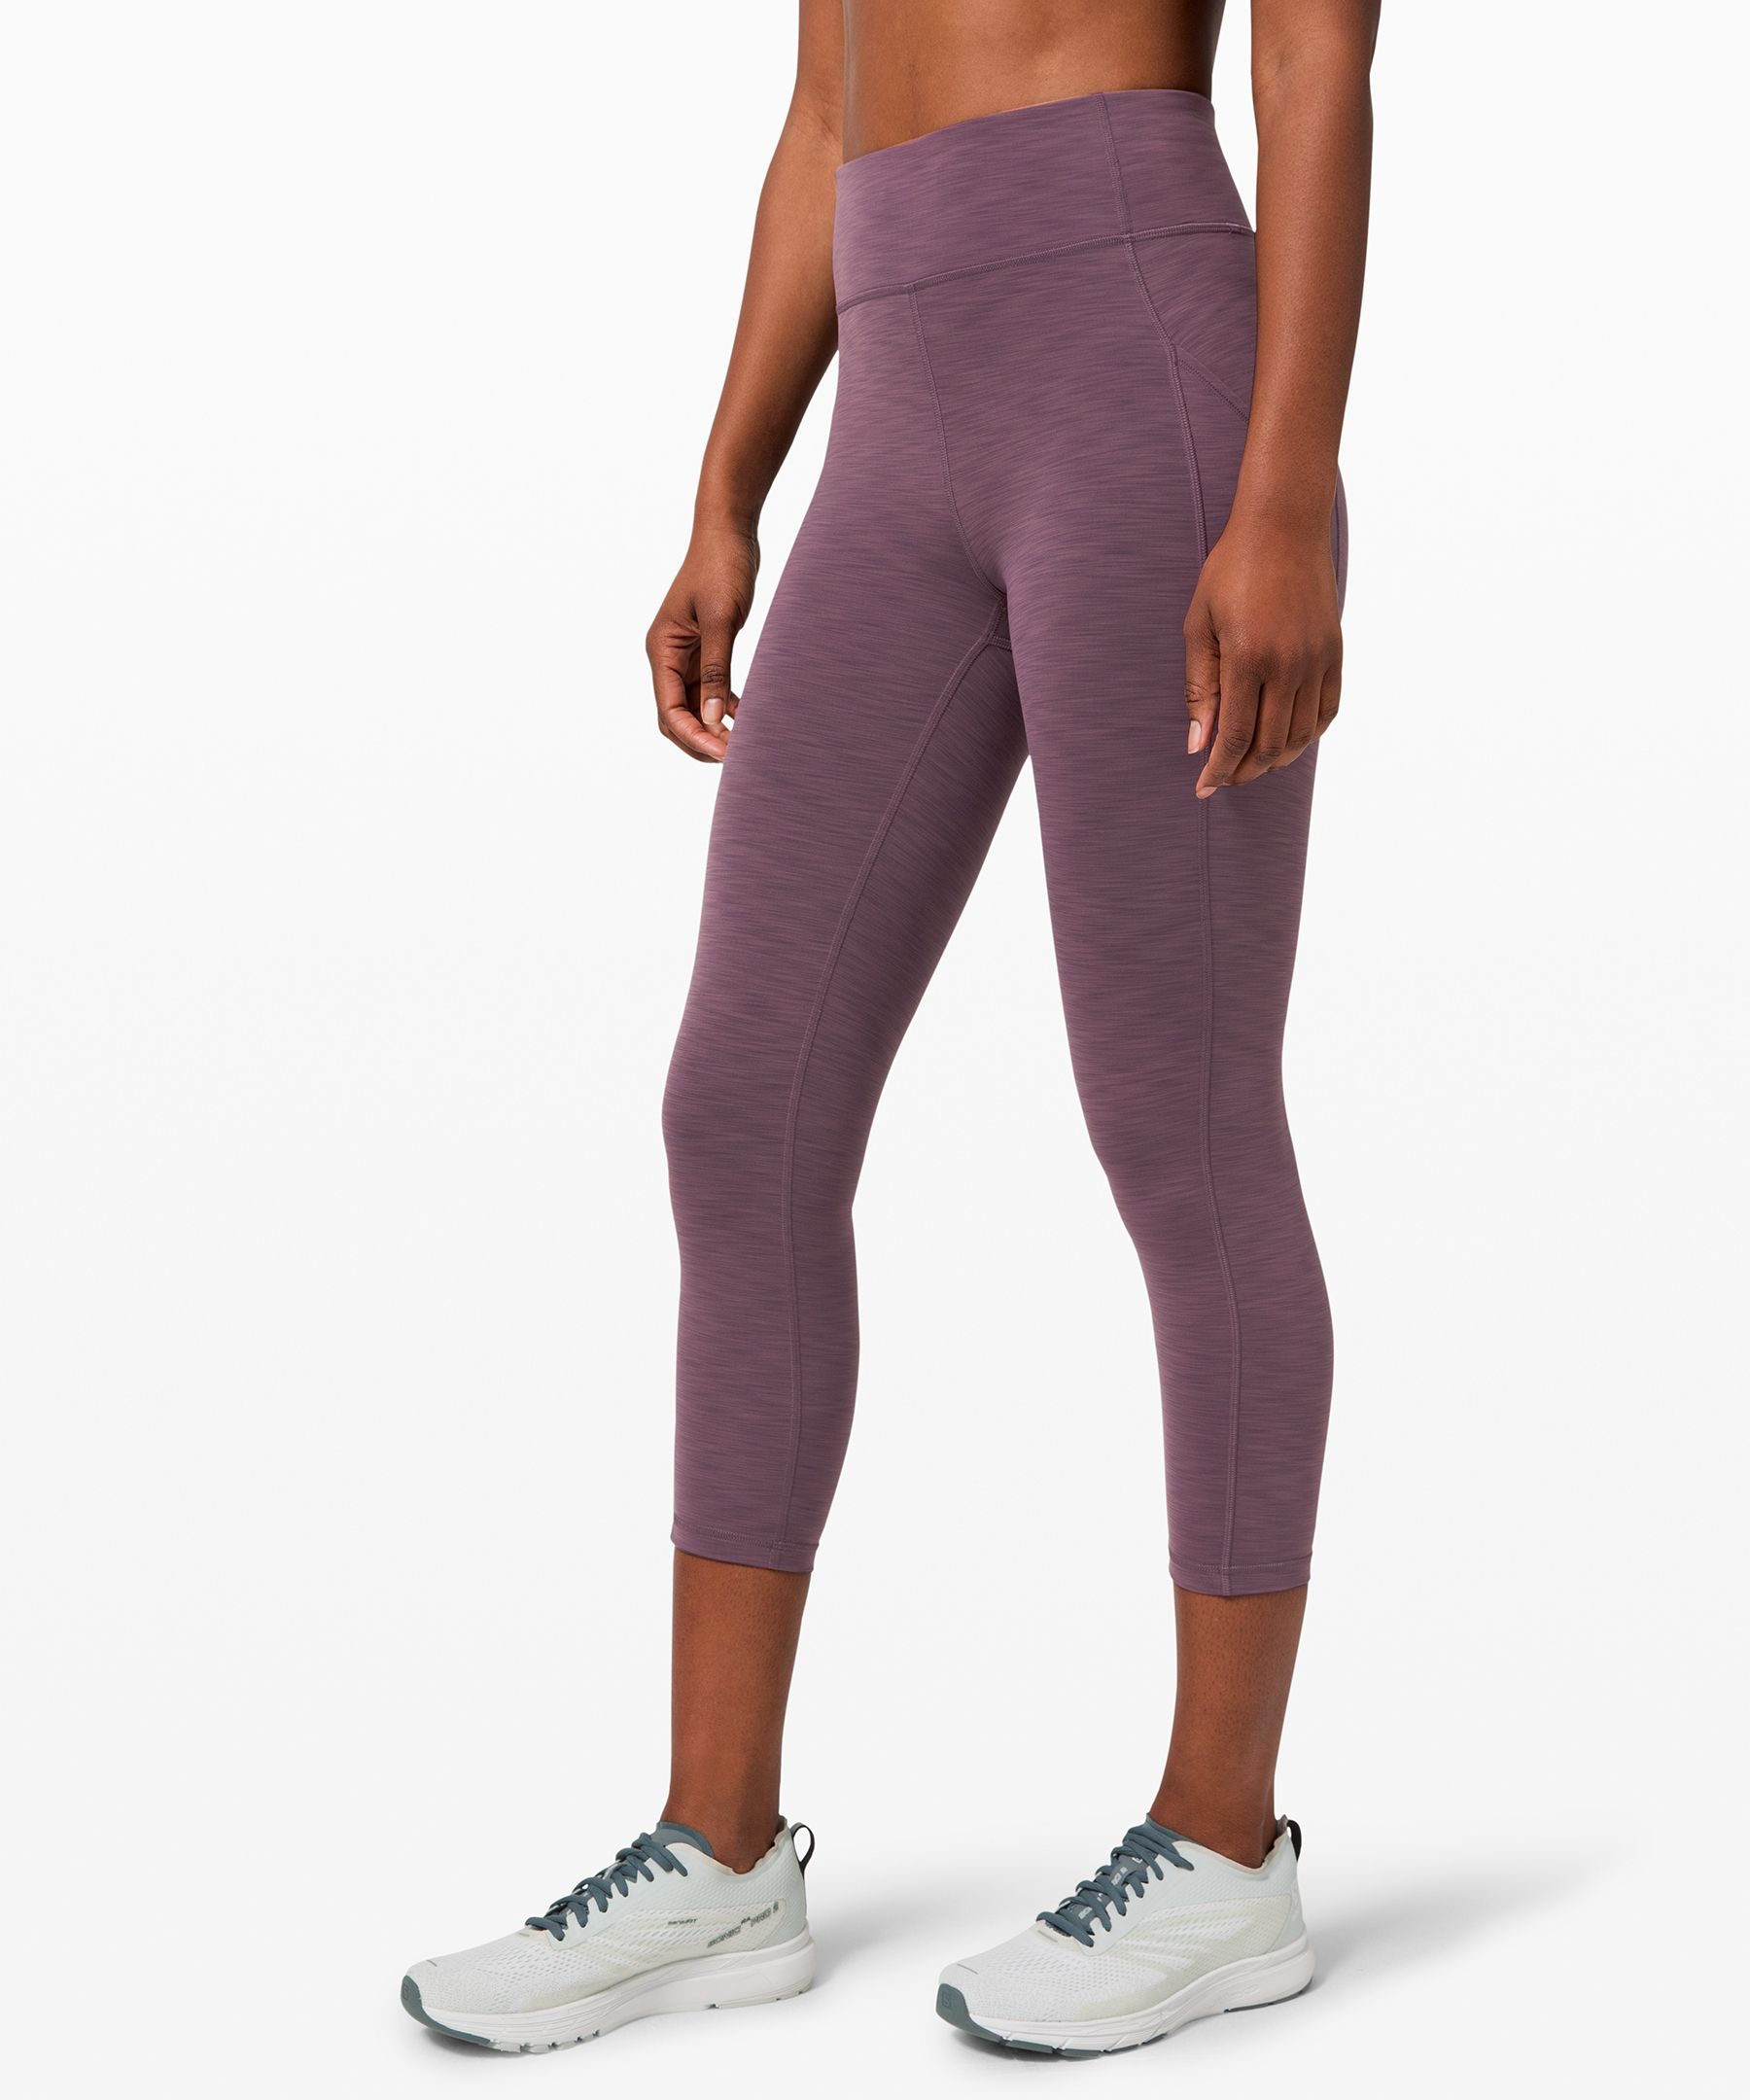 Power through hot, intense  sweat sessions in the  Invigorate collection. These  crops feature side pockets and  are made from  ultra-breathable,  cool-to-the-touch Everlux™  fabric that wicks sweat so you  can keep your mind on your  movement.